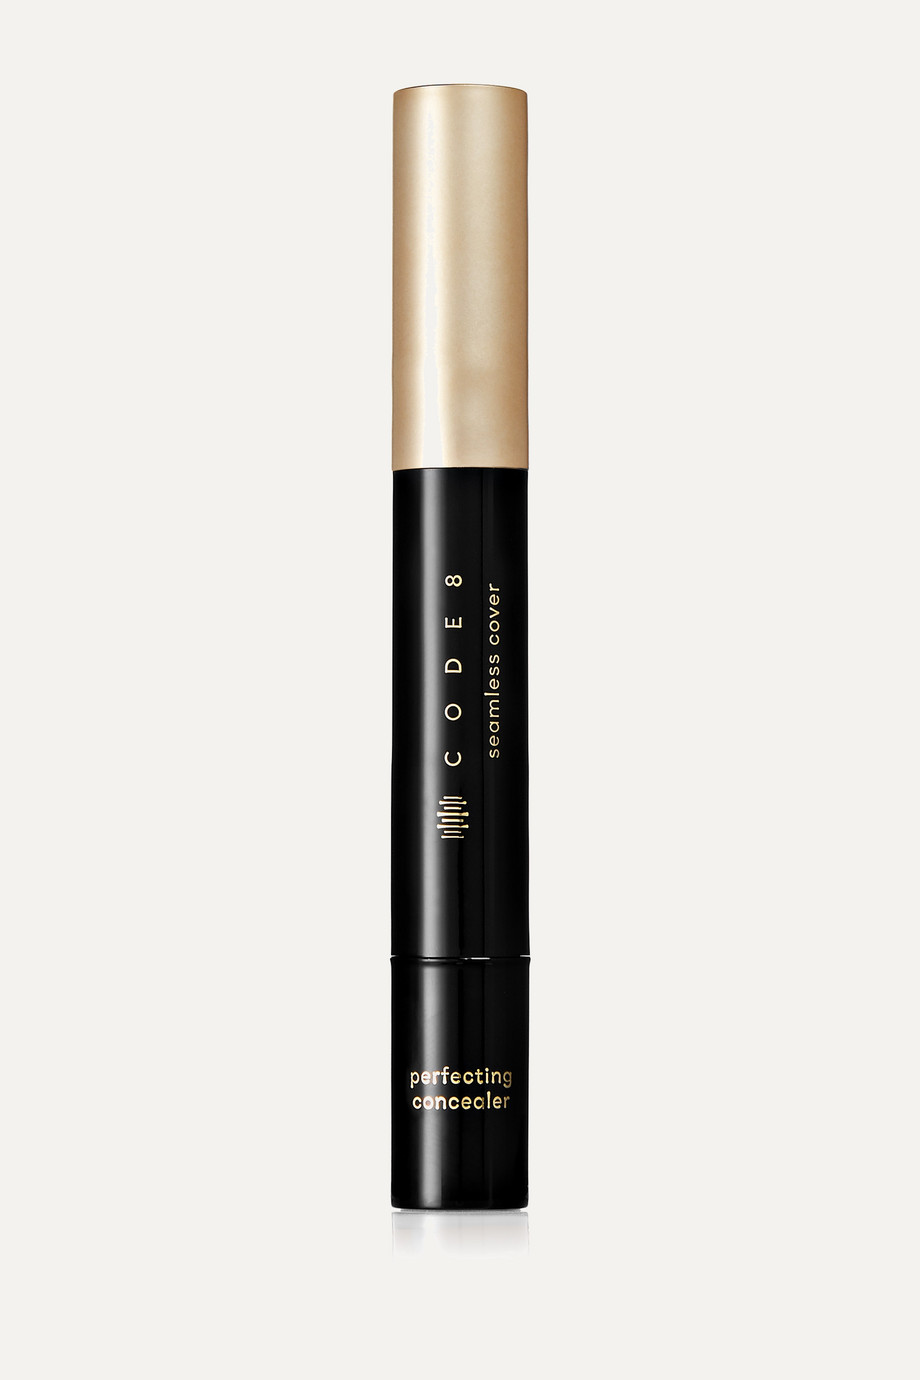 Code8 Seamless Cover Perfecting Concealer - NC15